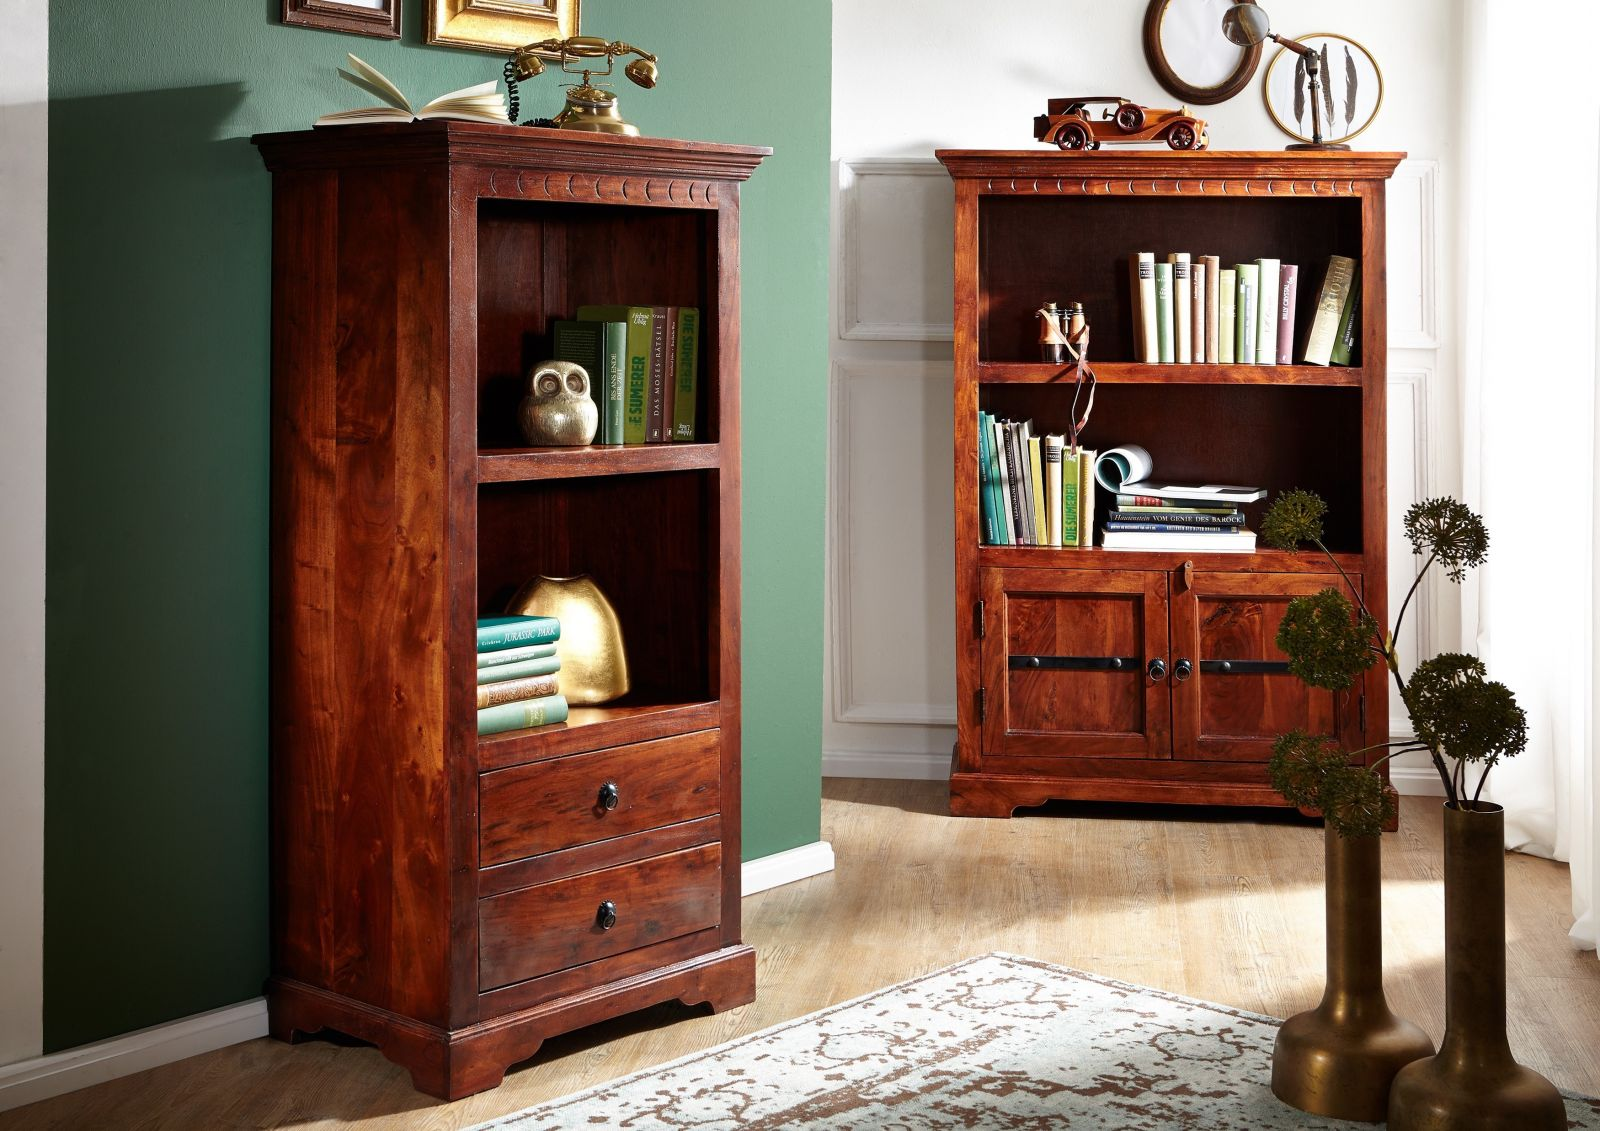 regal 1010 akazie kolonial oxford massiv ebay. Black Bedroom Furniture Sets. Home Design Ideas